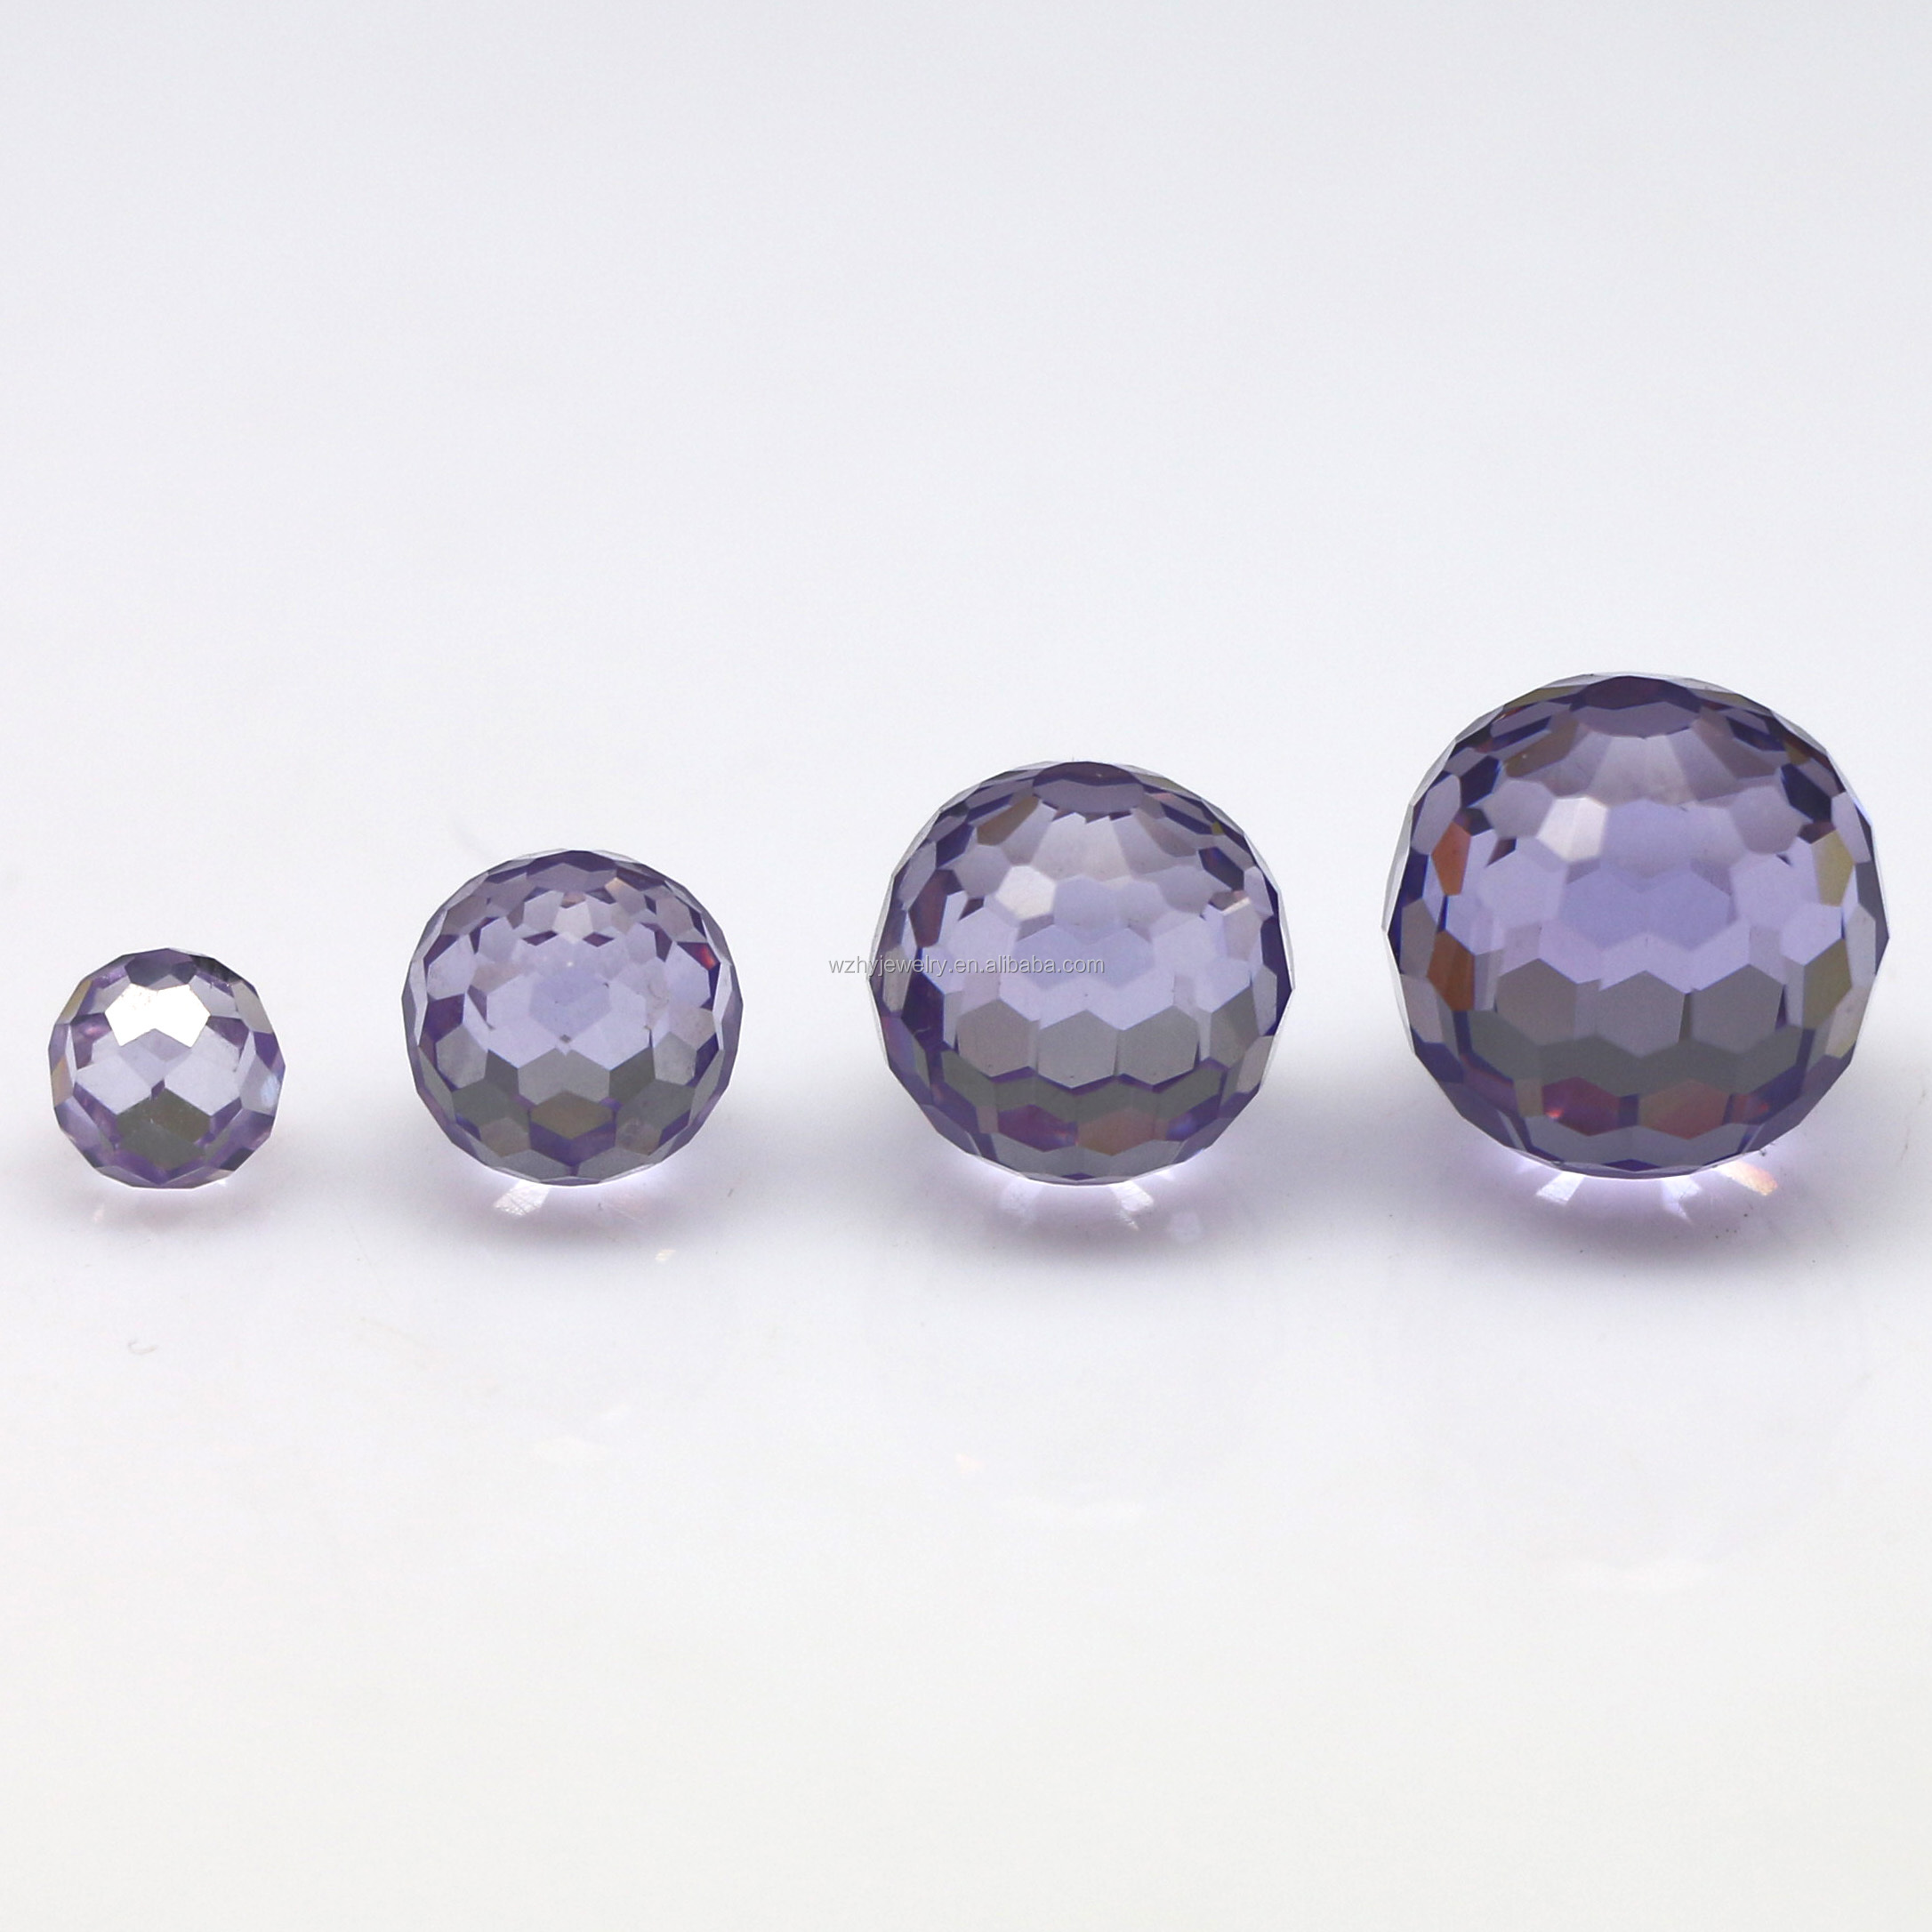 4mm6mm8mm12mm custom made round faceted cut cubic zirconia beads